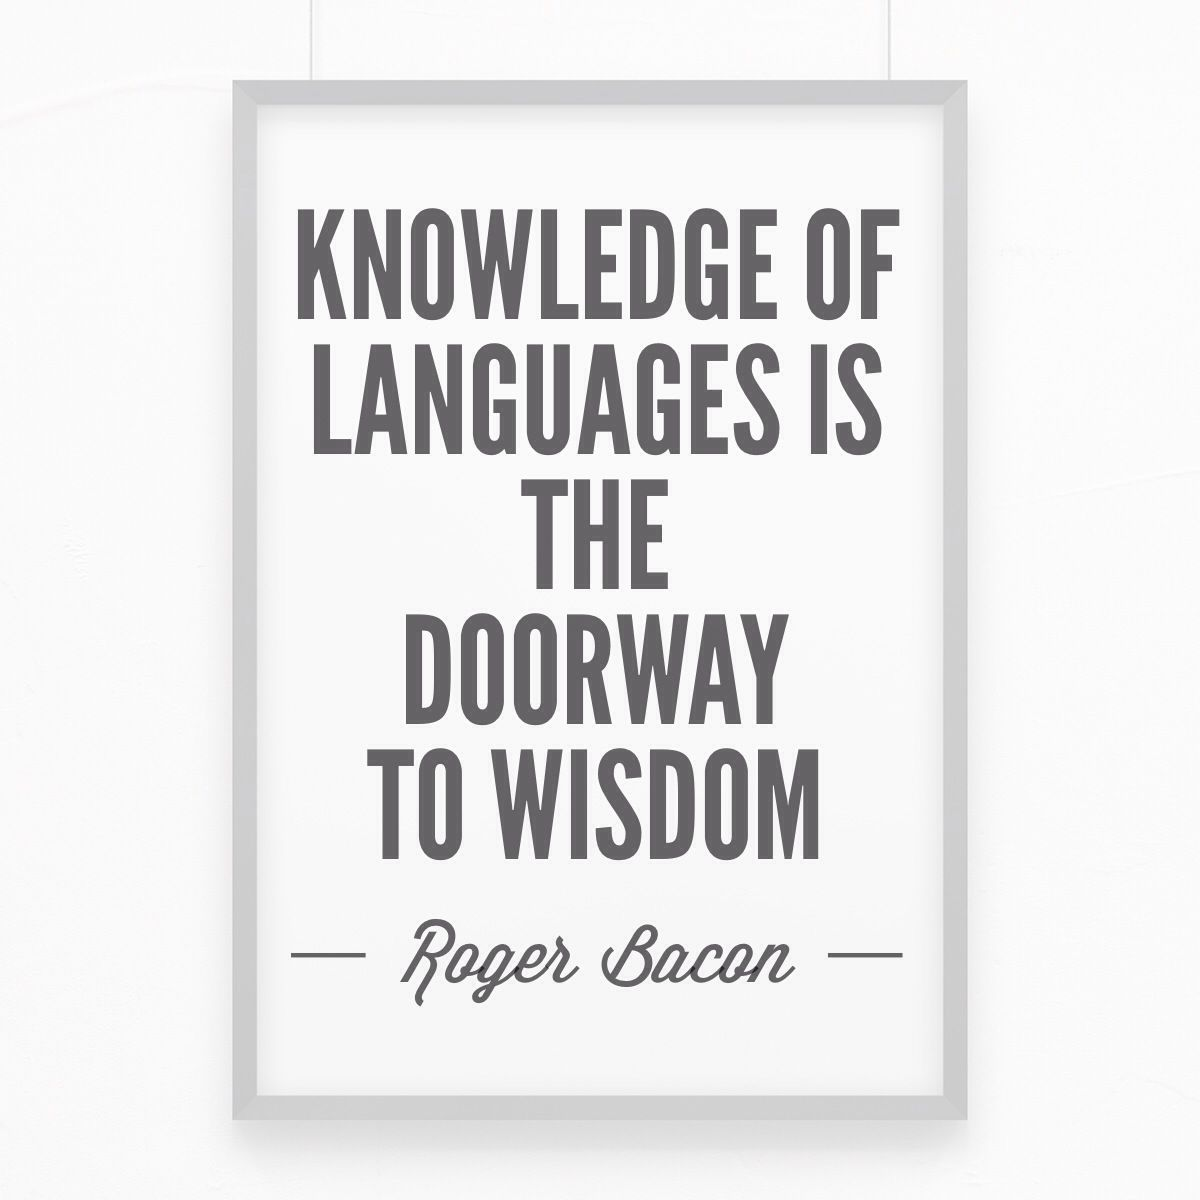 Motivation Quote Quote About Language Learning Knowledge Of Languages Is The Doorway To Wisdom Roger Bacon